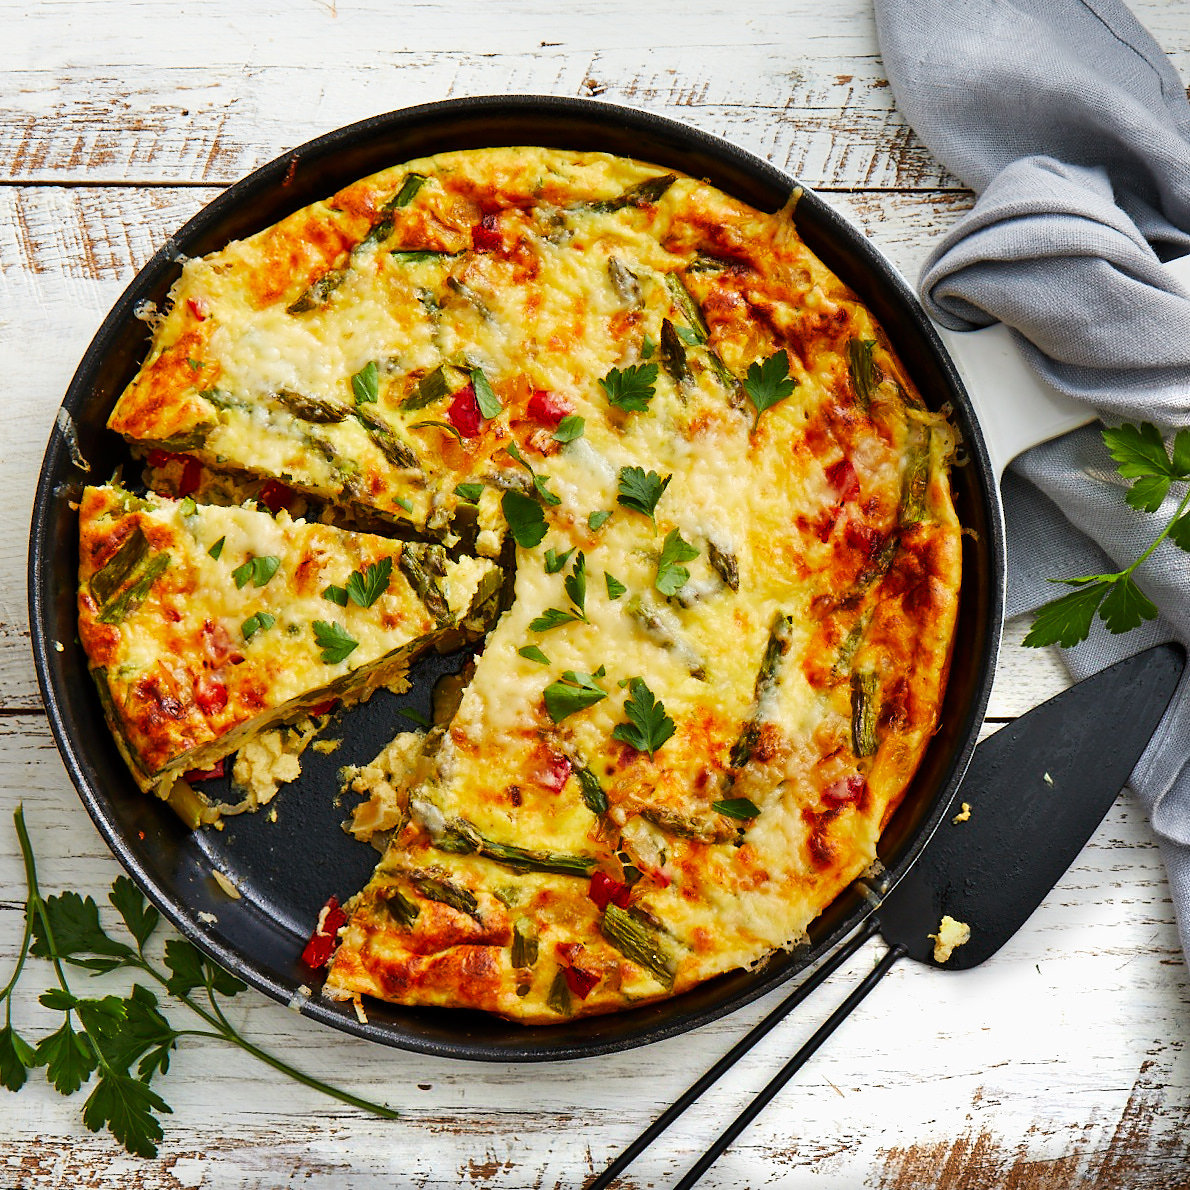 Perfect for a spring brunch or light supper, this Italian omelet is baked so it is easy to serve to a group.